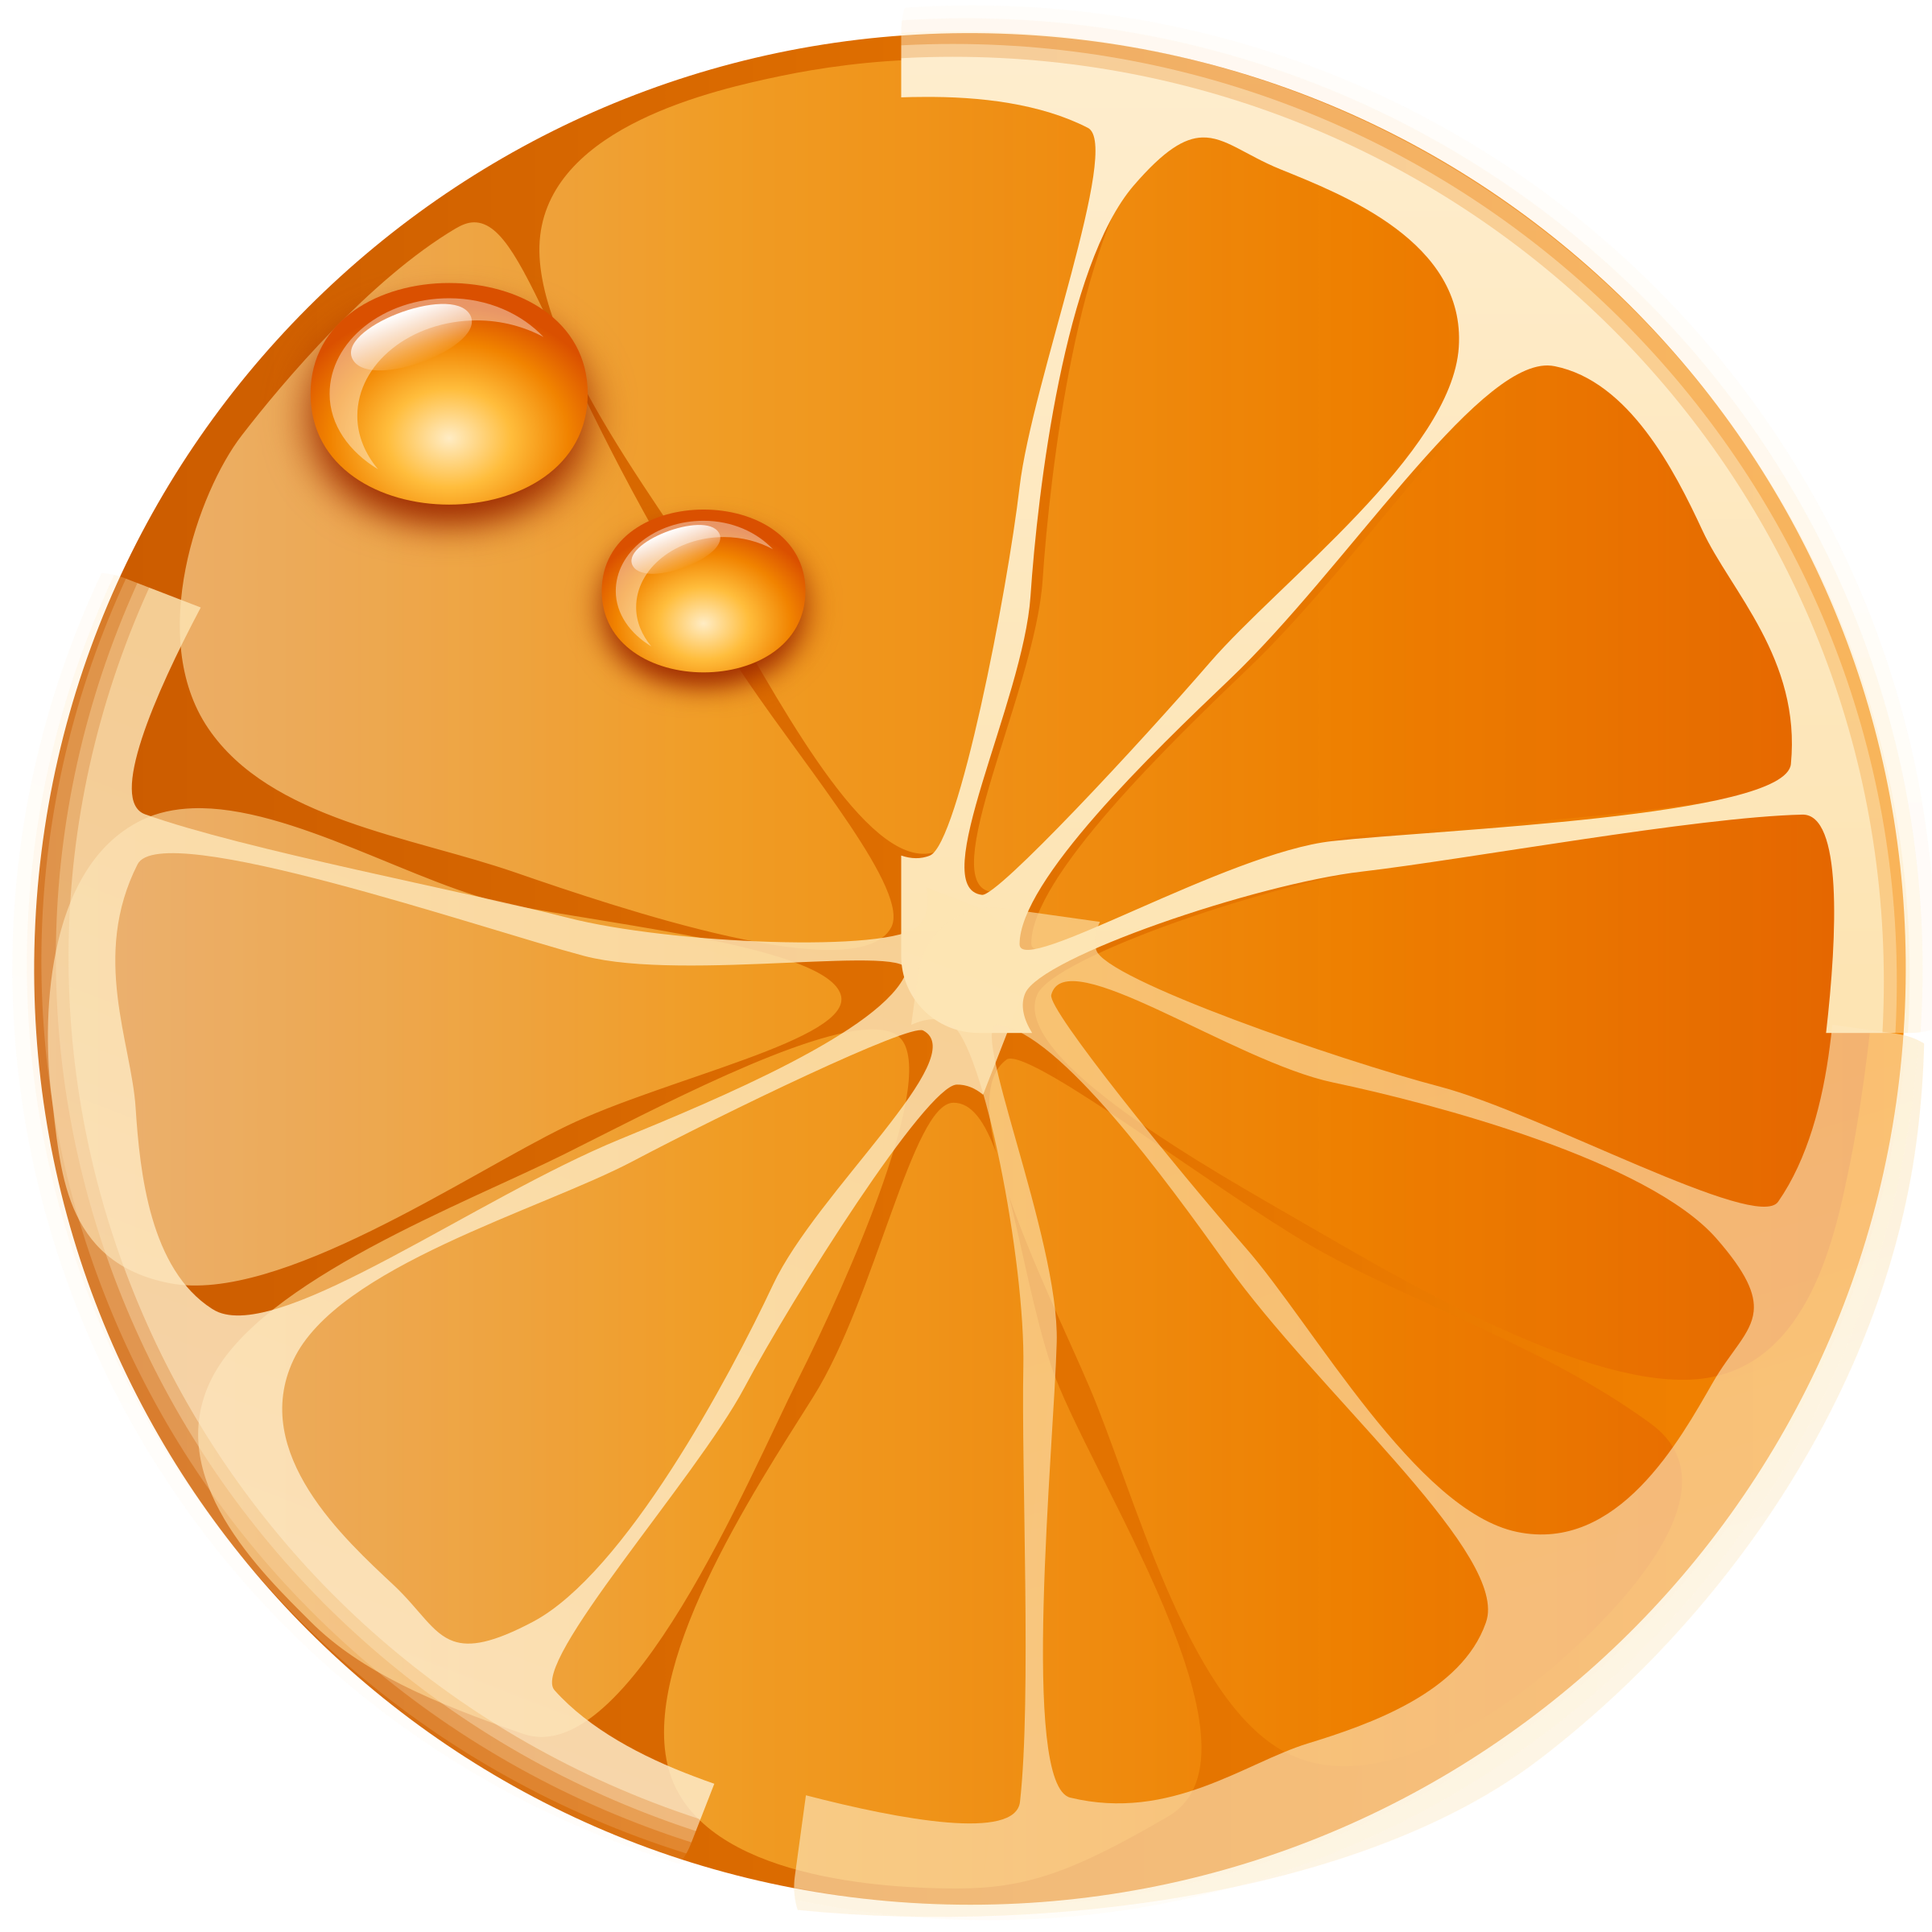 2400x2400 Orange (Fruit) Clipart Big Orange